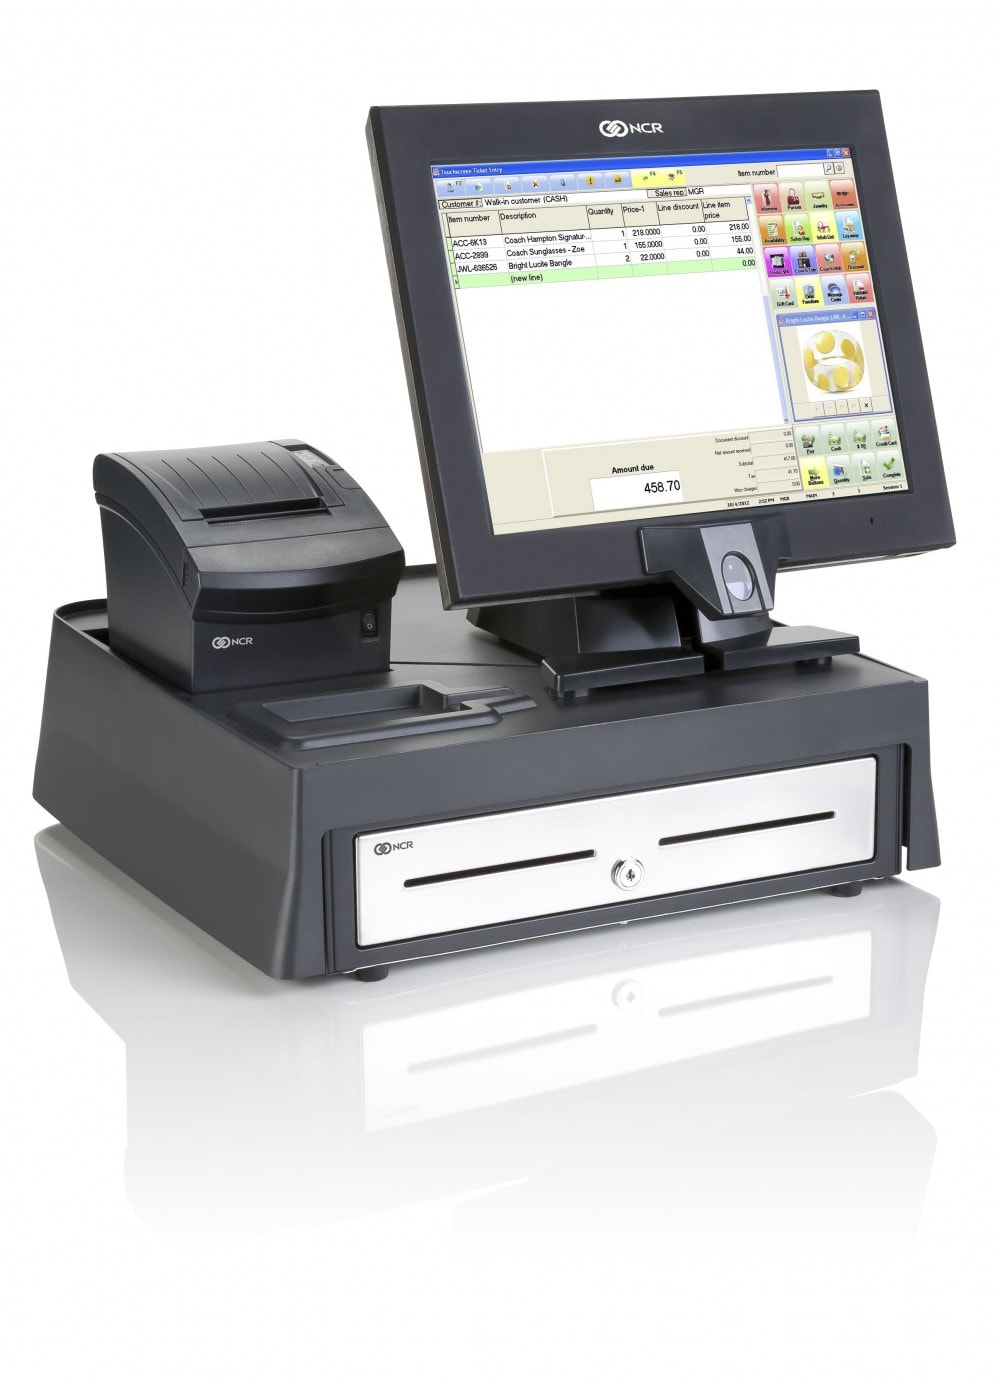 mobile point of sale with ncr counterpoint